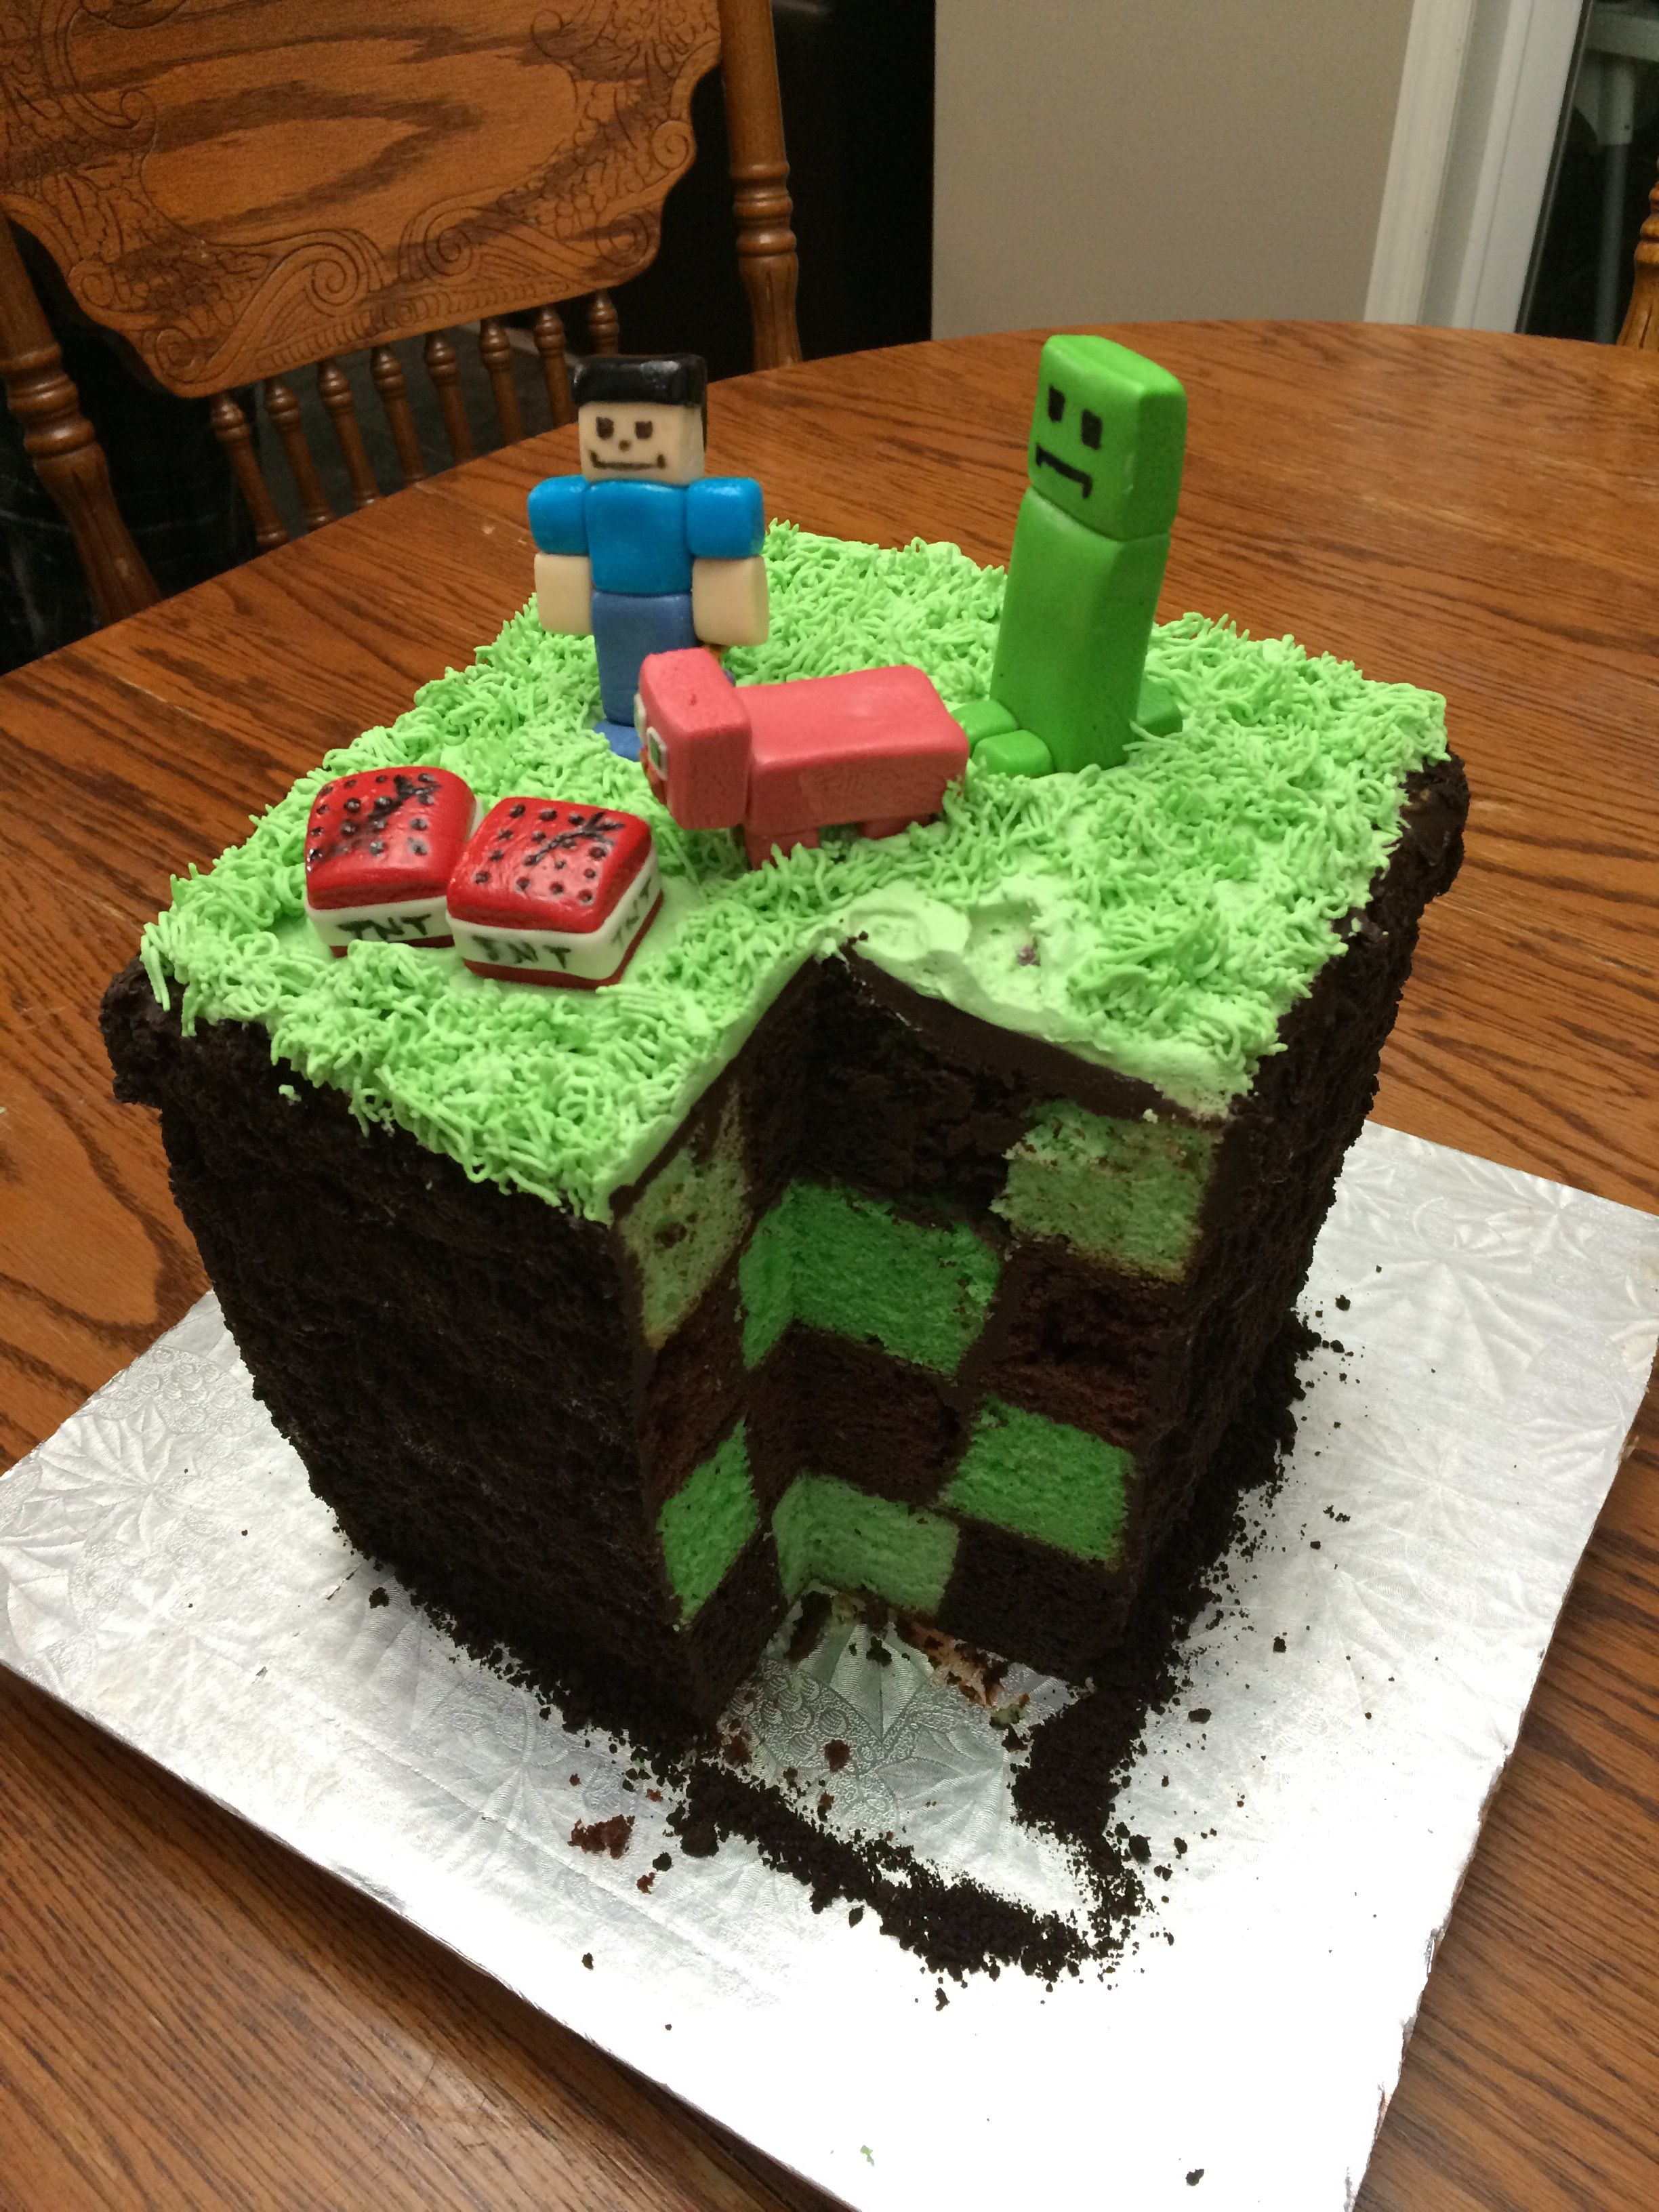 My Mom Made A Pretty Cool Minecraft Cake For My Brothers Birthday